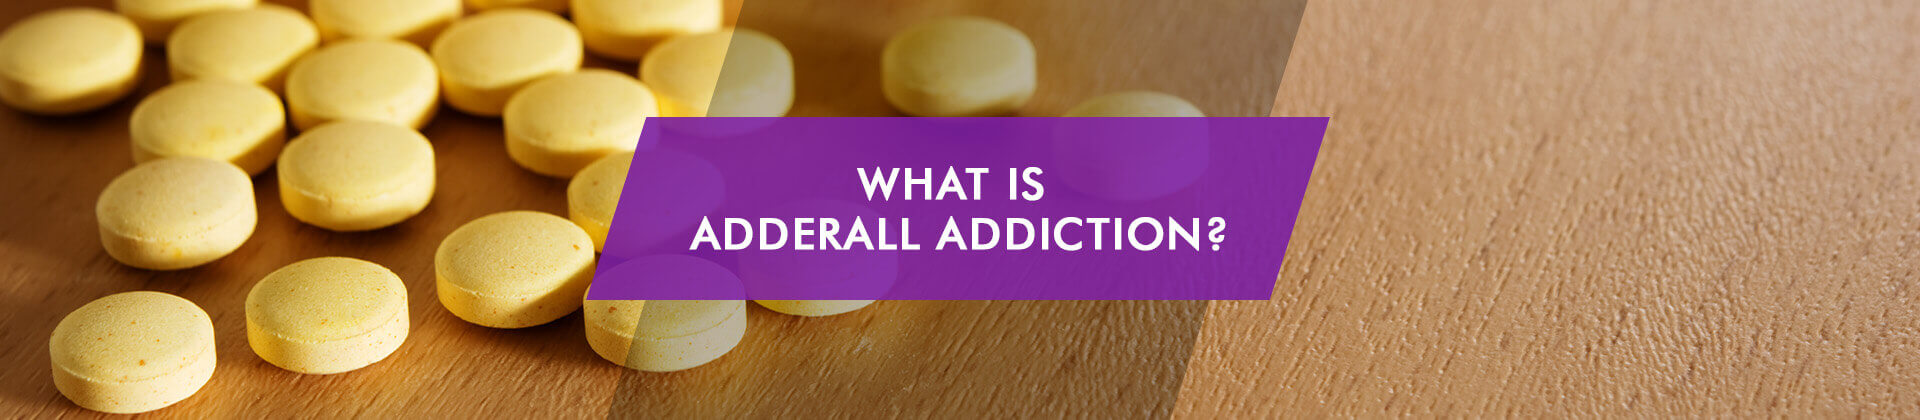 What is Adderall Addiction caption and orange pills on the table